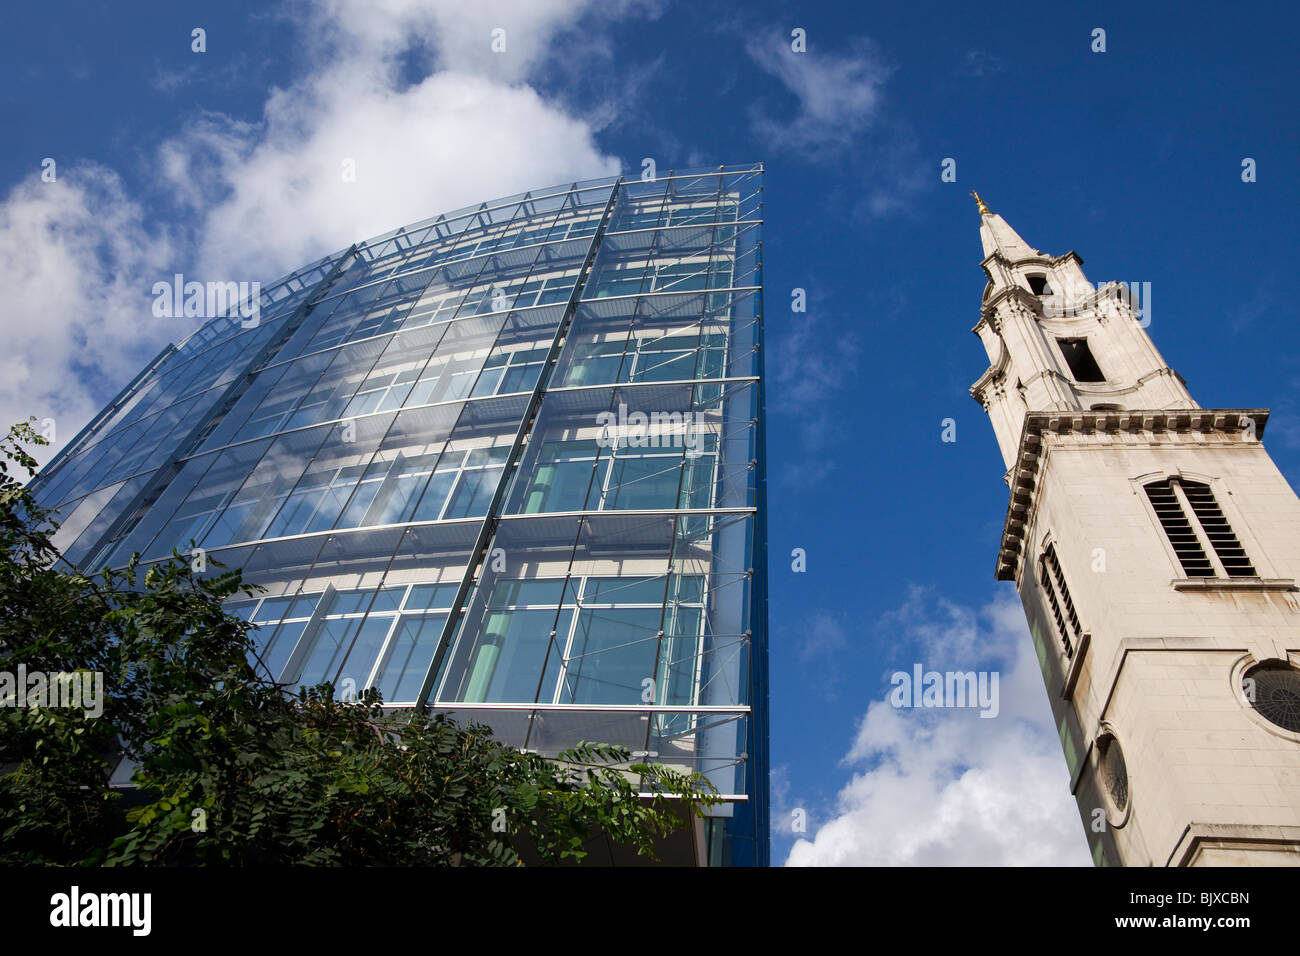 Old versus new architecture in London near St Pauls London England Great Britain United Kingdom UK GB British Isles - Stock Image